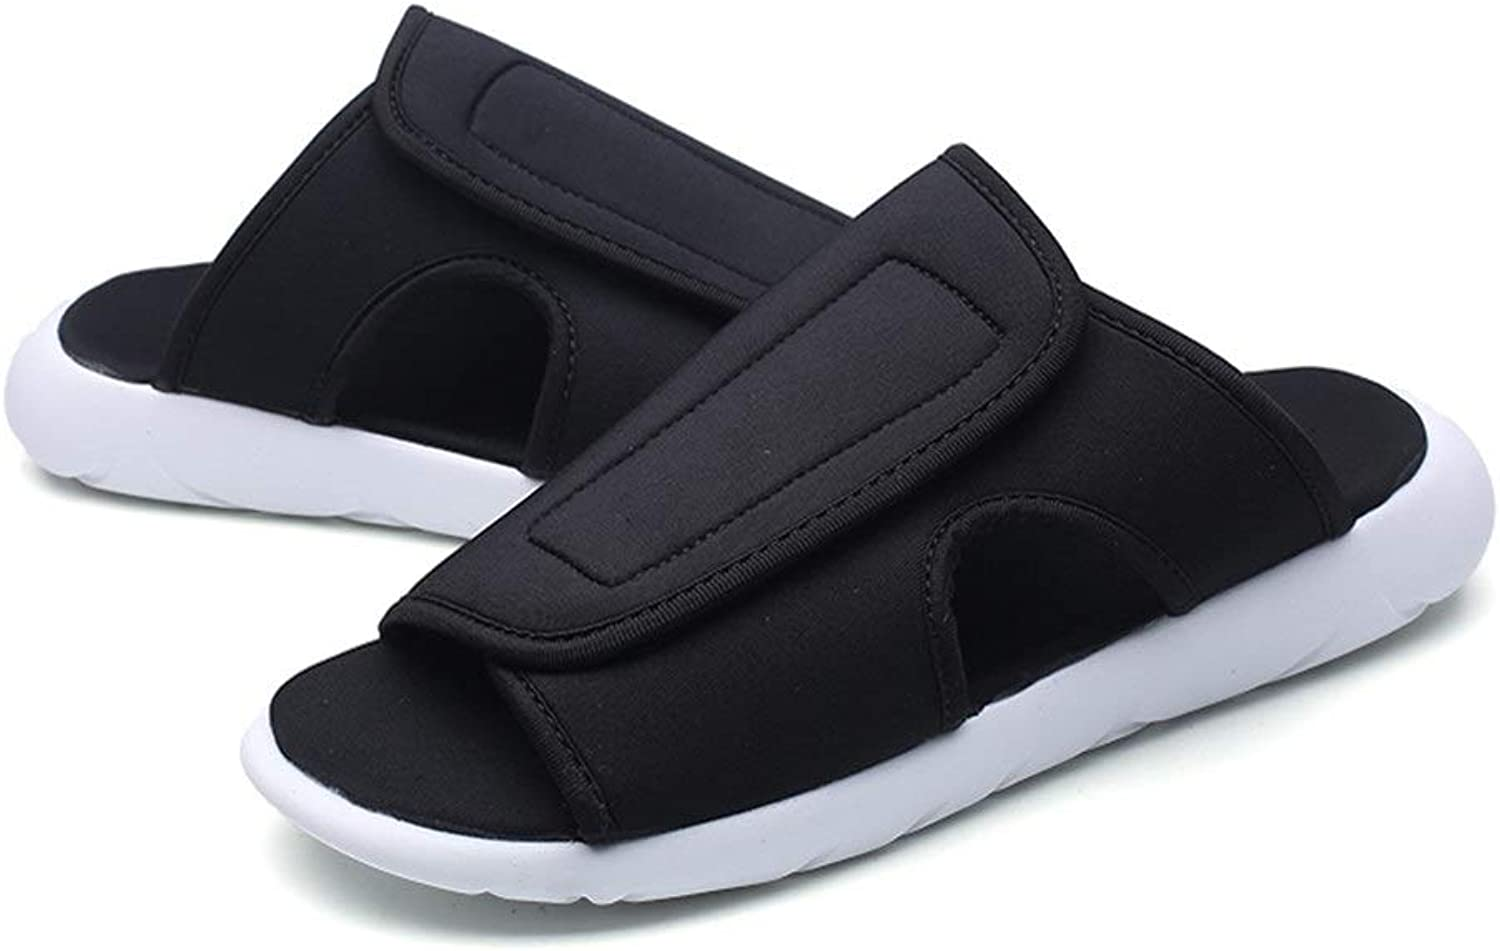 Ino Slippers for Men Sandal Casual Slip On Style Cotton Cloth Material Soft Easy and sluttish Outsole Casual